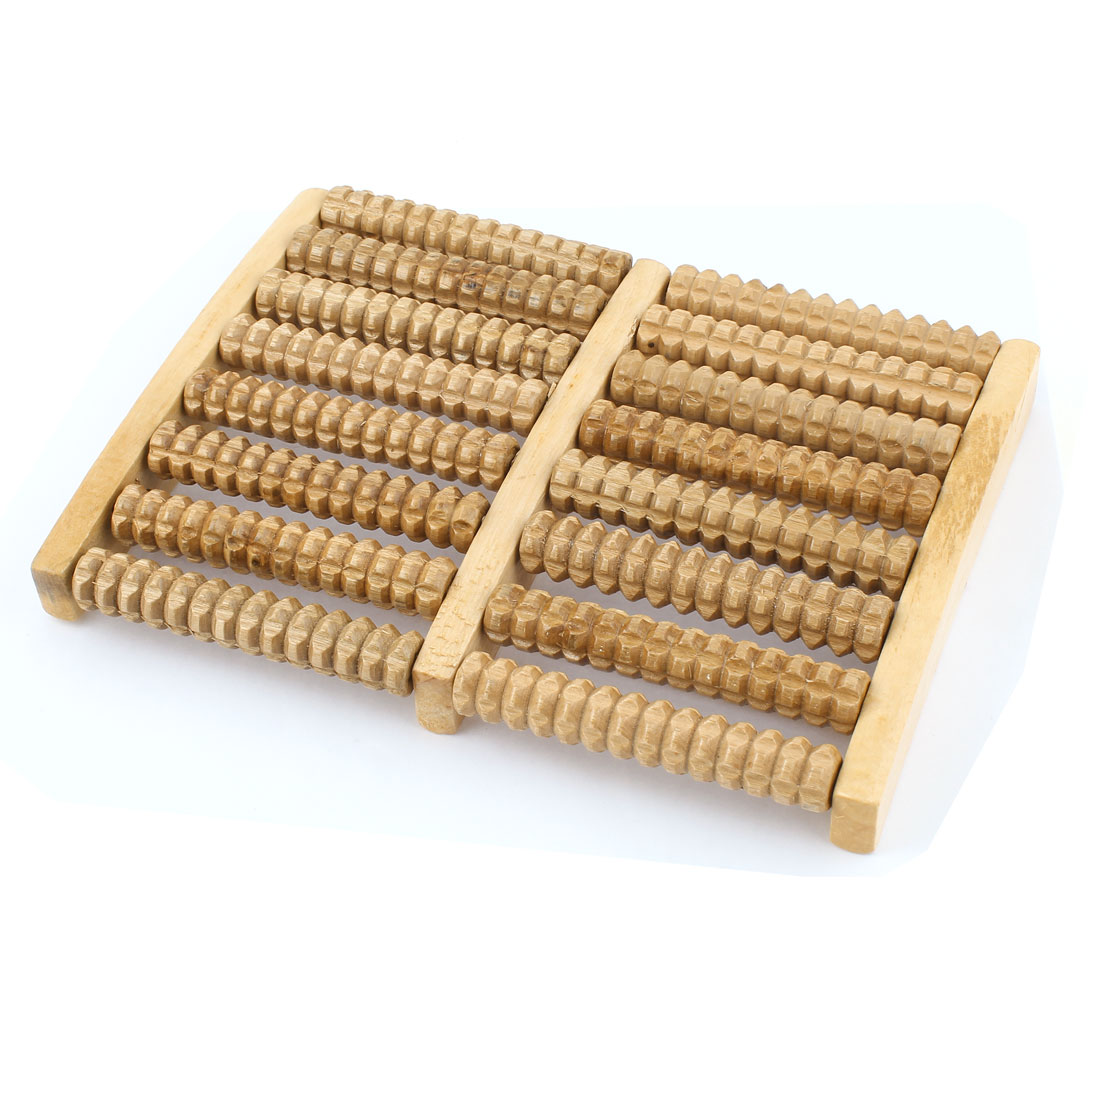 UXCELL Stress Relief Health Care Relax Wooden 8 Rows Beaded Roller Foot Massager